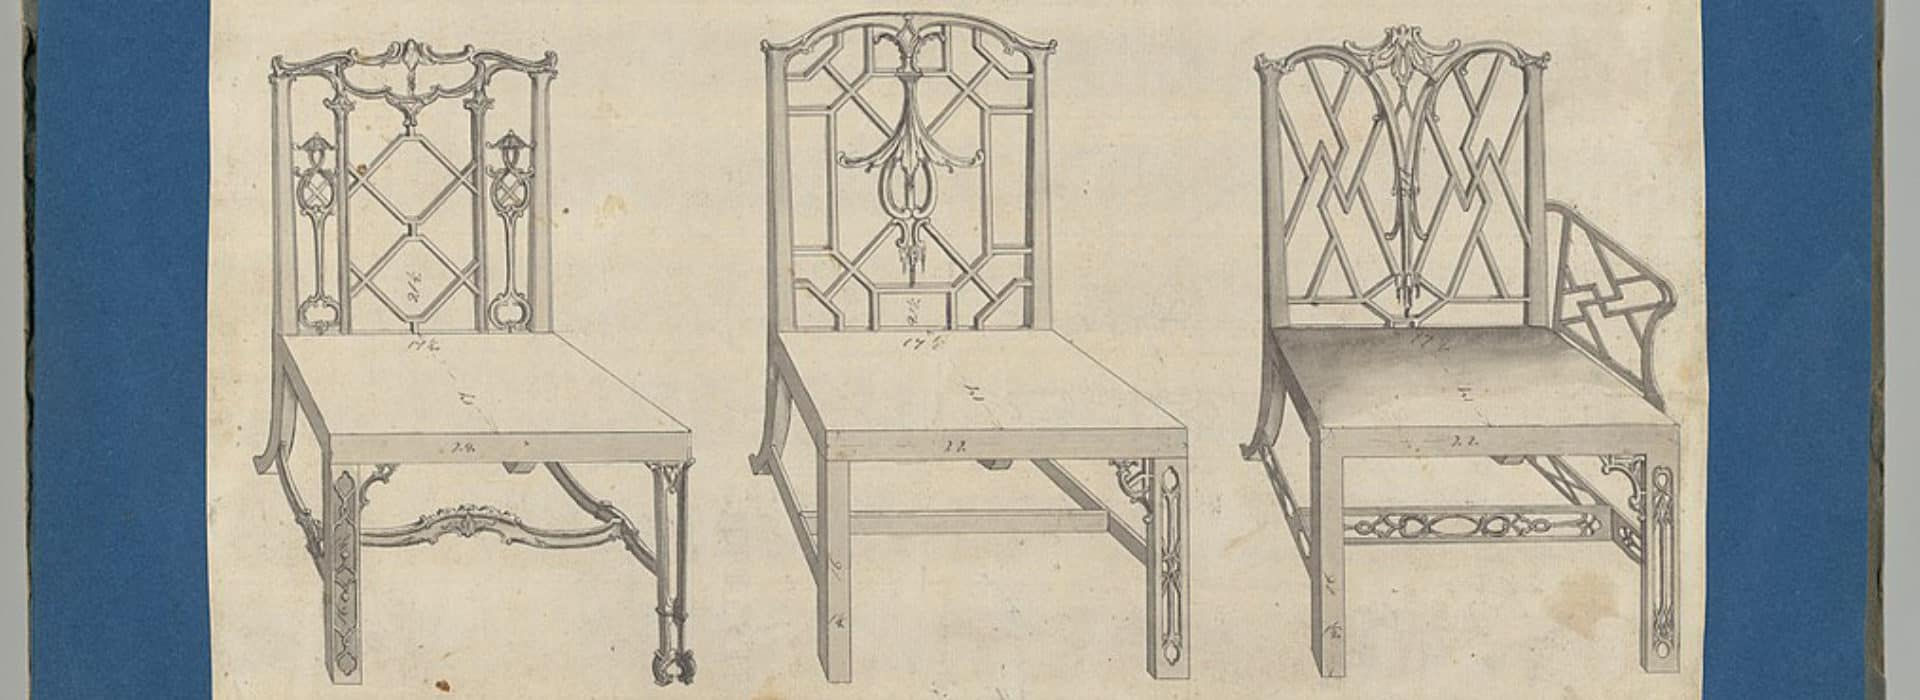 chippindale chairs